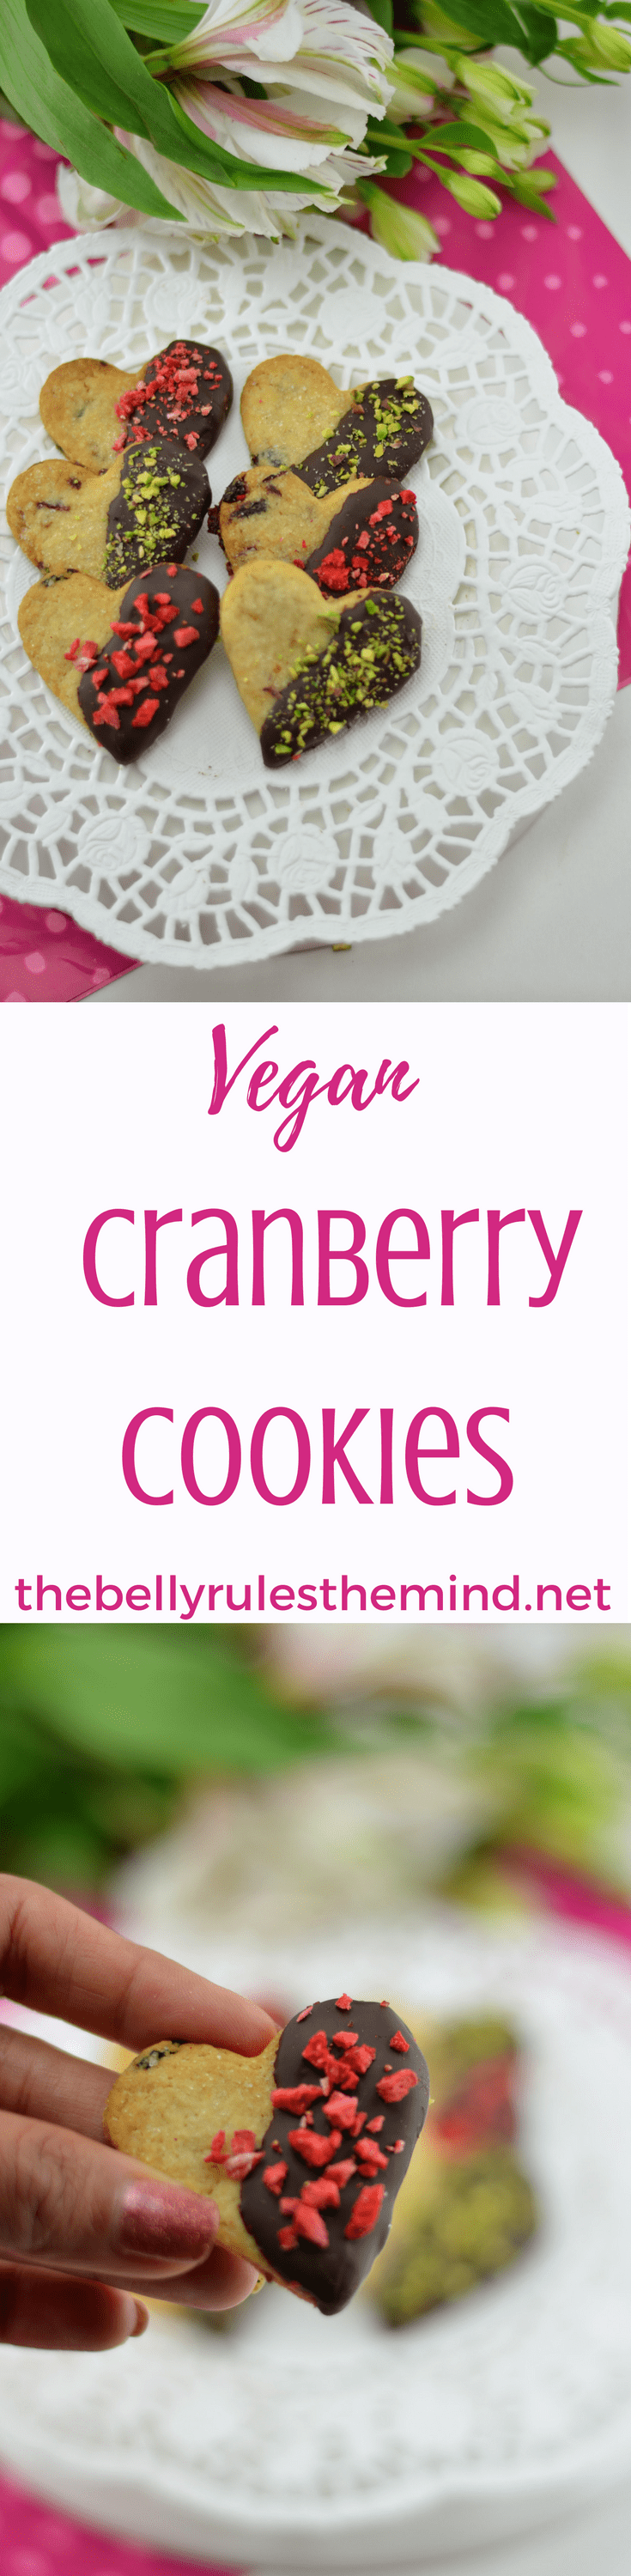 Vegan Cranberry Cookies are brimming with delicious melt-in-your-mouth flavors. Dress them up with some sugar or keep them pure and simple. Absolutely addictive.- They're easier to make than you might think! Yet another Valentine's Day and yet another way to let your loved ones know about how much you care.Vegan.|https;//www.thebellyrulestheind.net @bellyrulesdmind